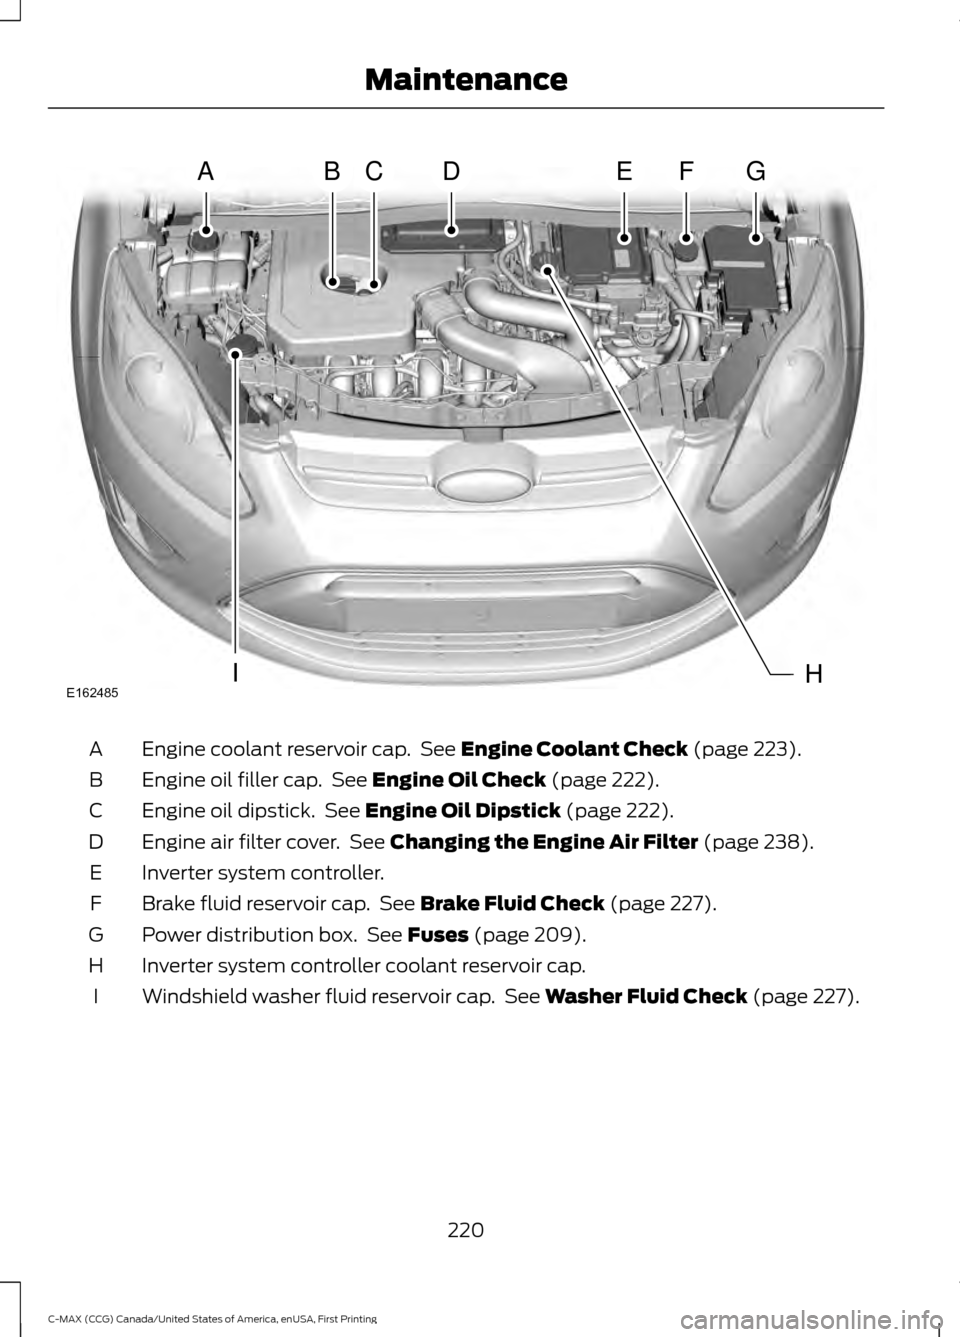 Ford C Max Hybrid 2016 2 G Owners Manual Ford C Max Hybrid Owners Manuals Air Filter Cover